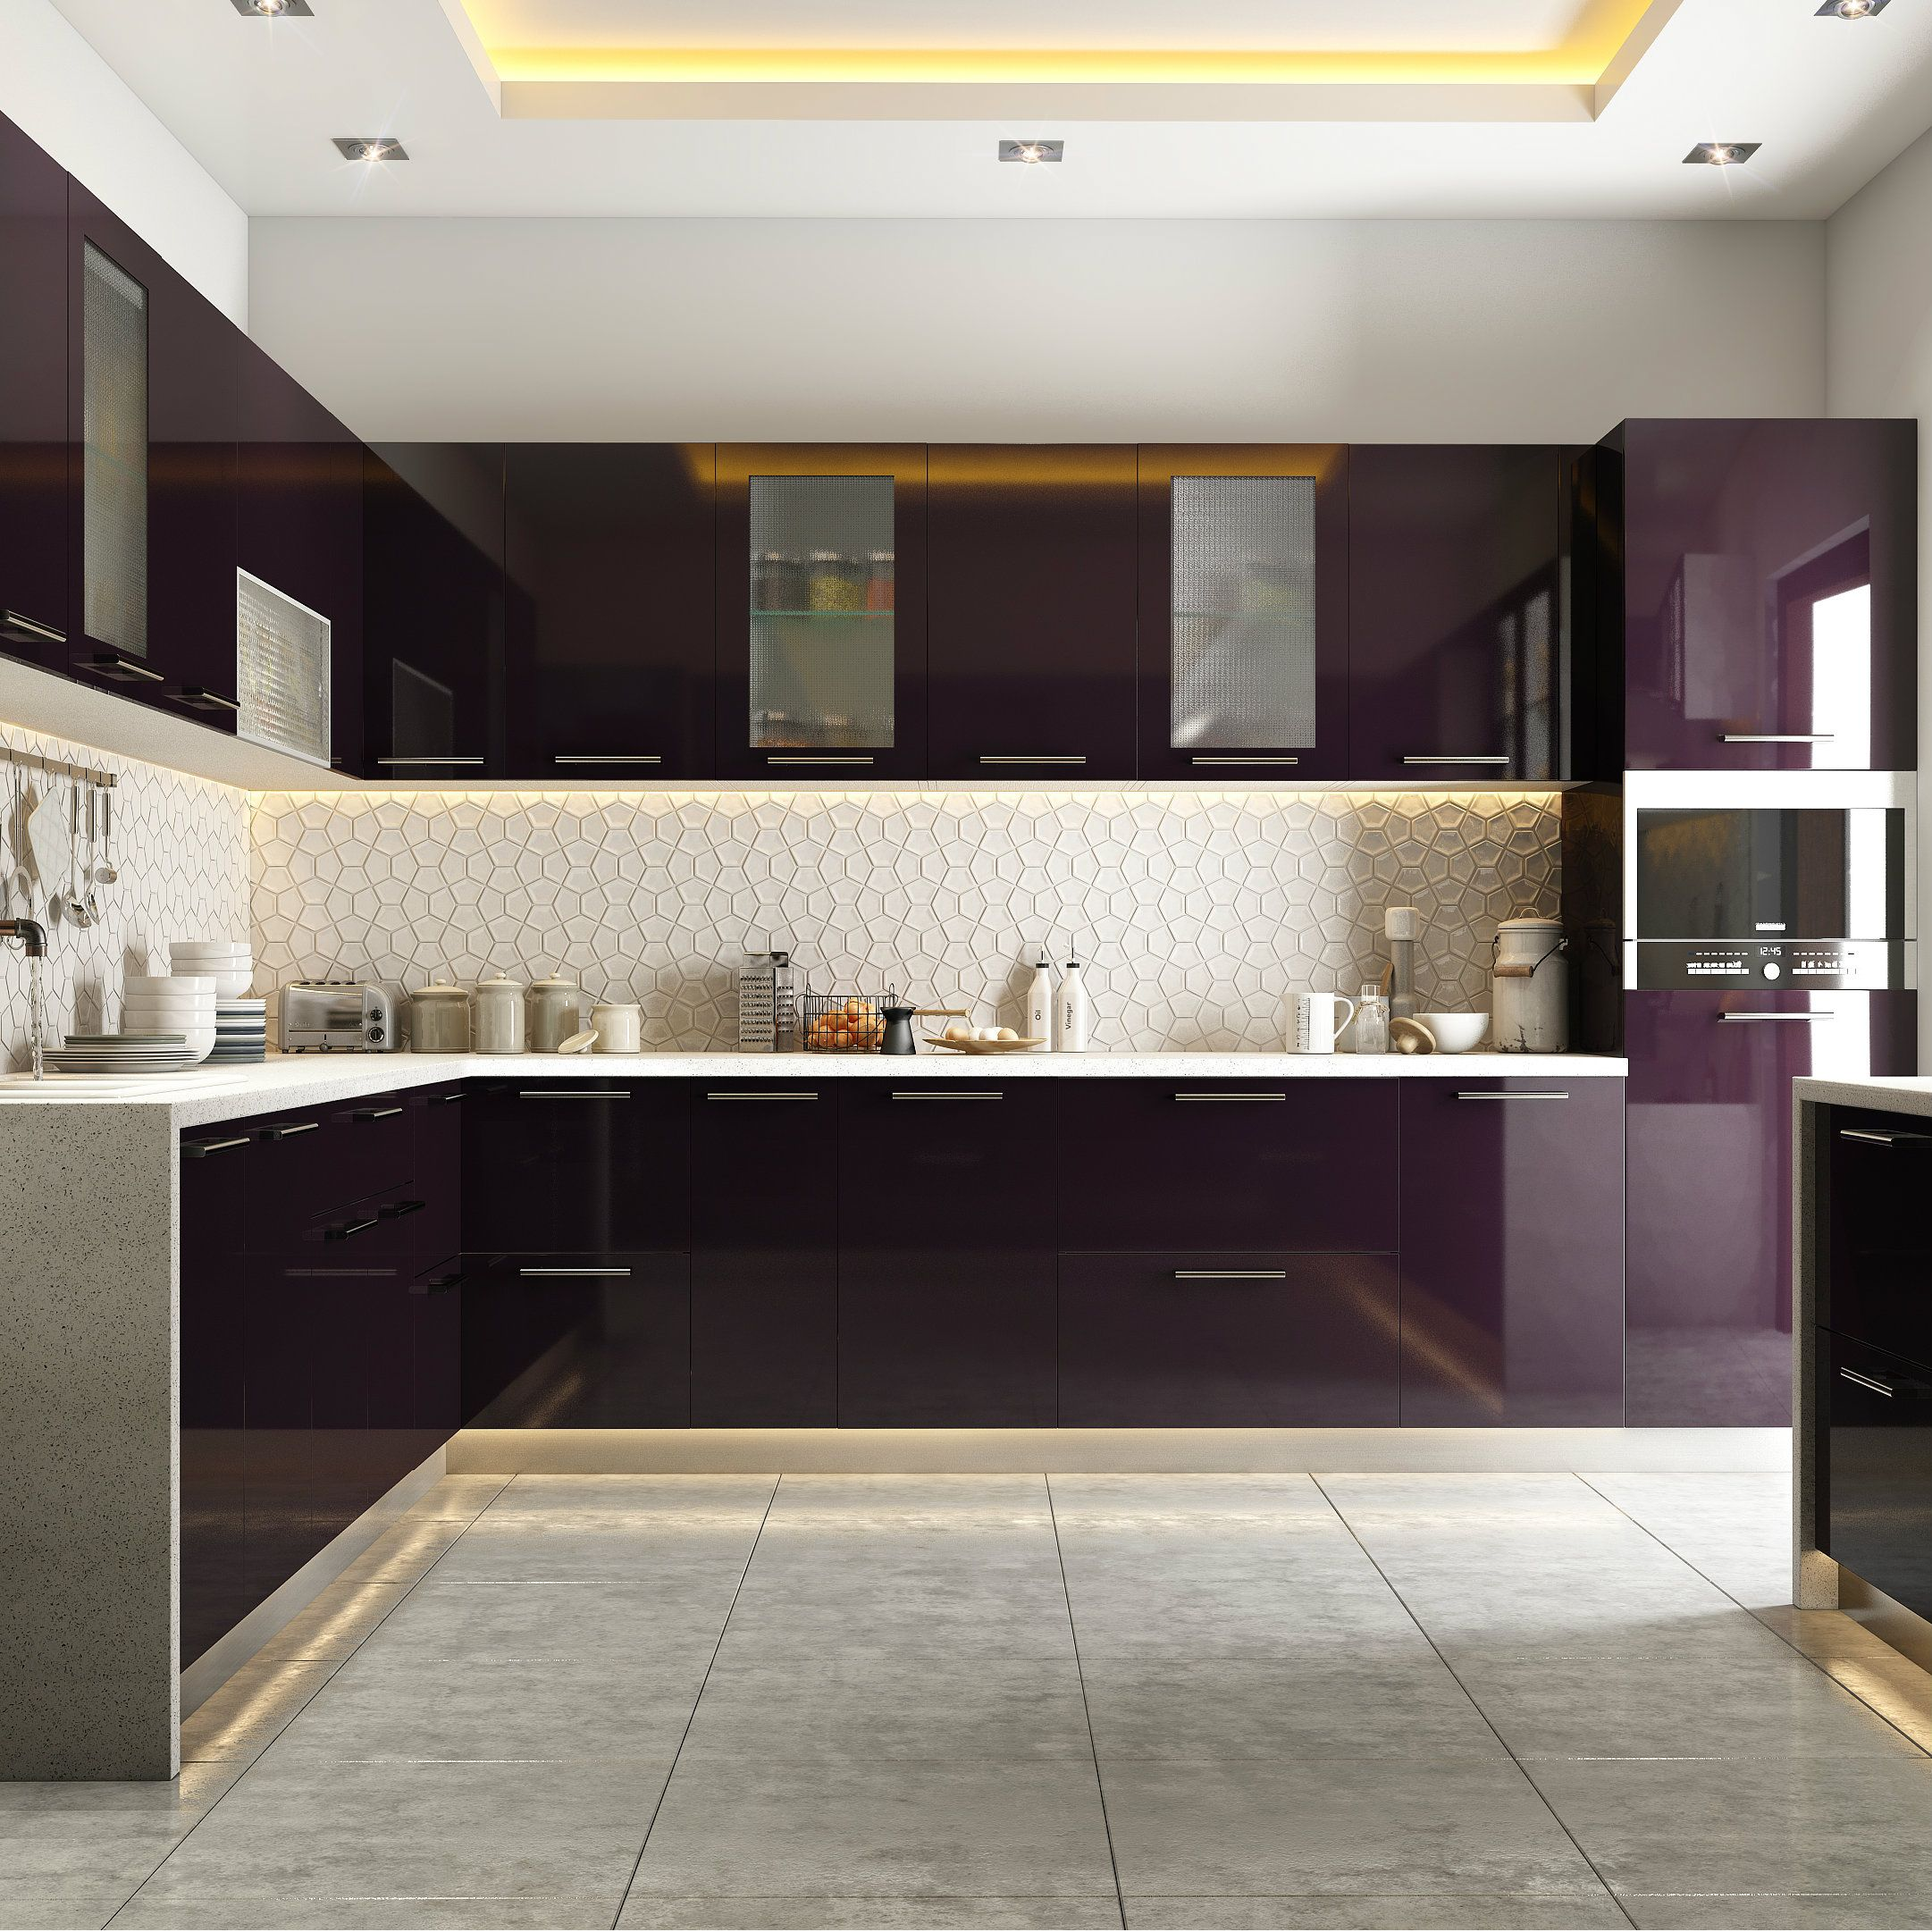 modular kitchen styled in burgundy hues kitchen modular kitchen furniture design kitchen design on a kitchen design id=34185